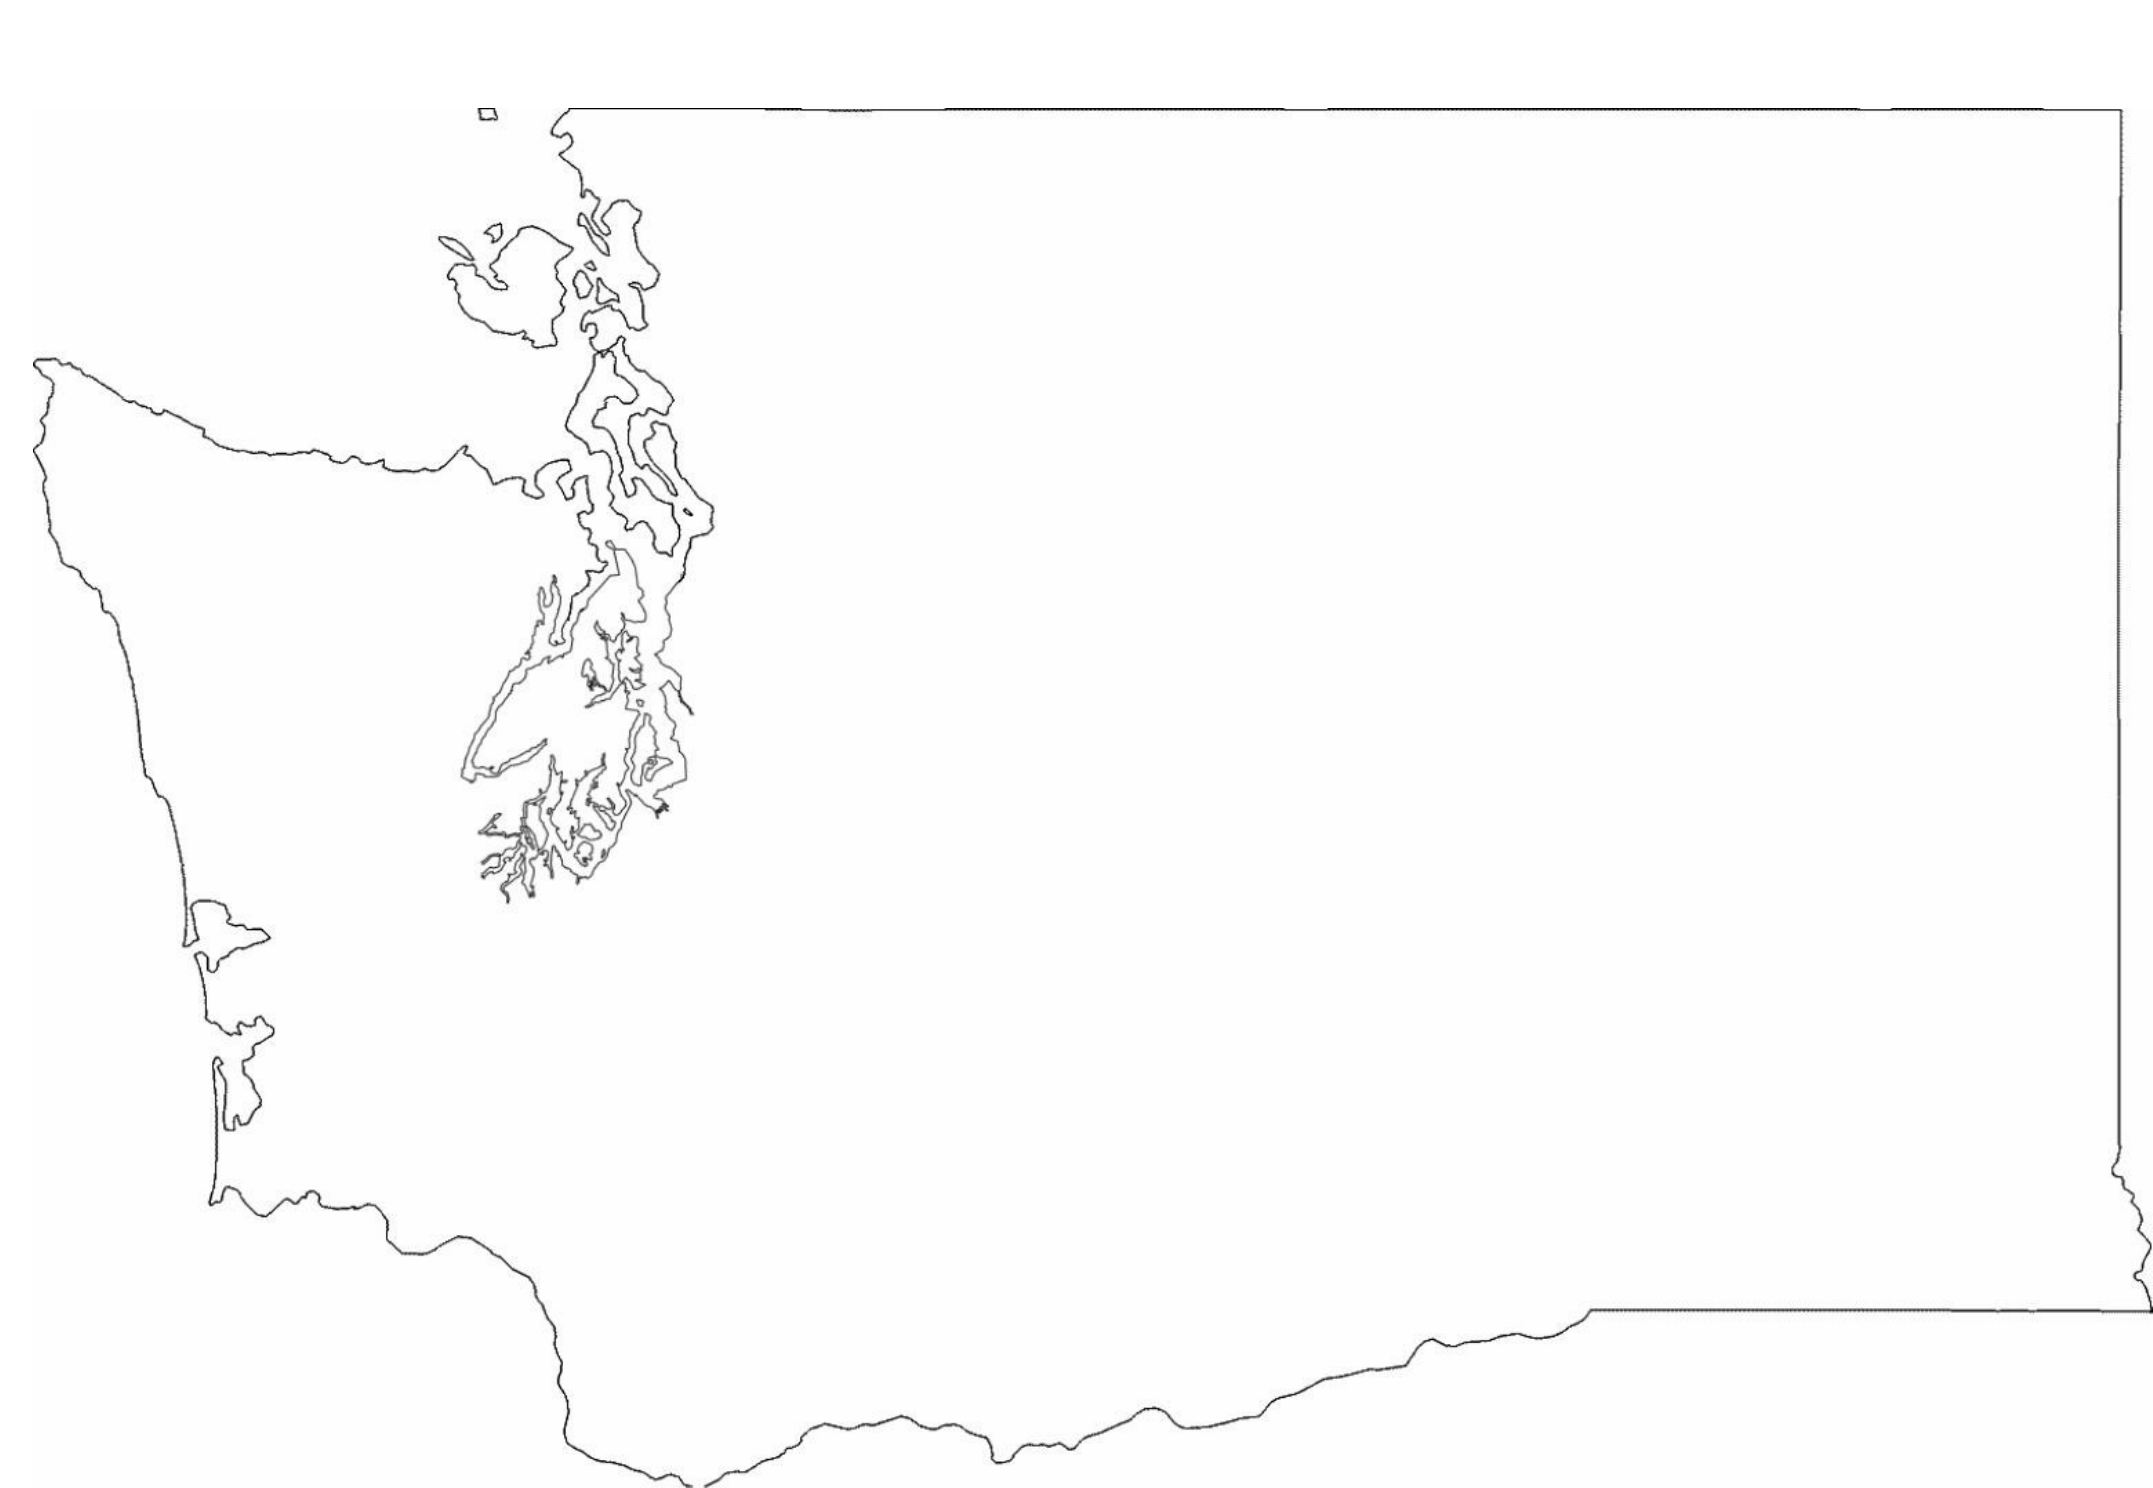 Washington State Outline Map Free Download